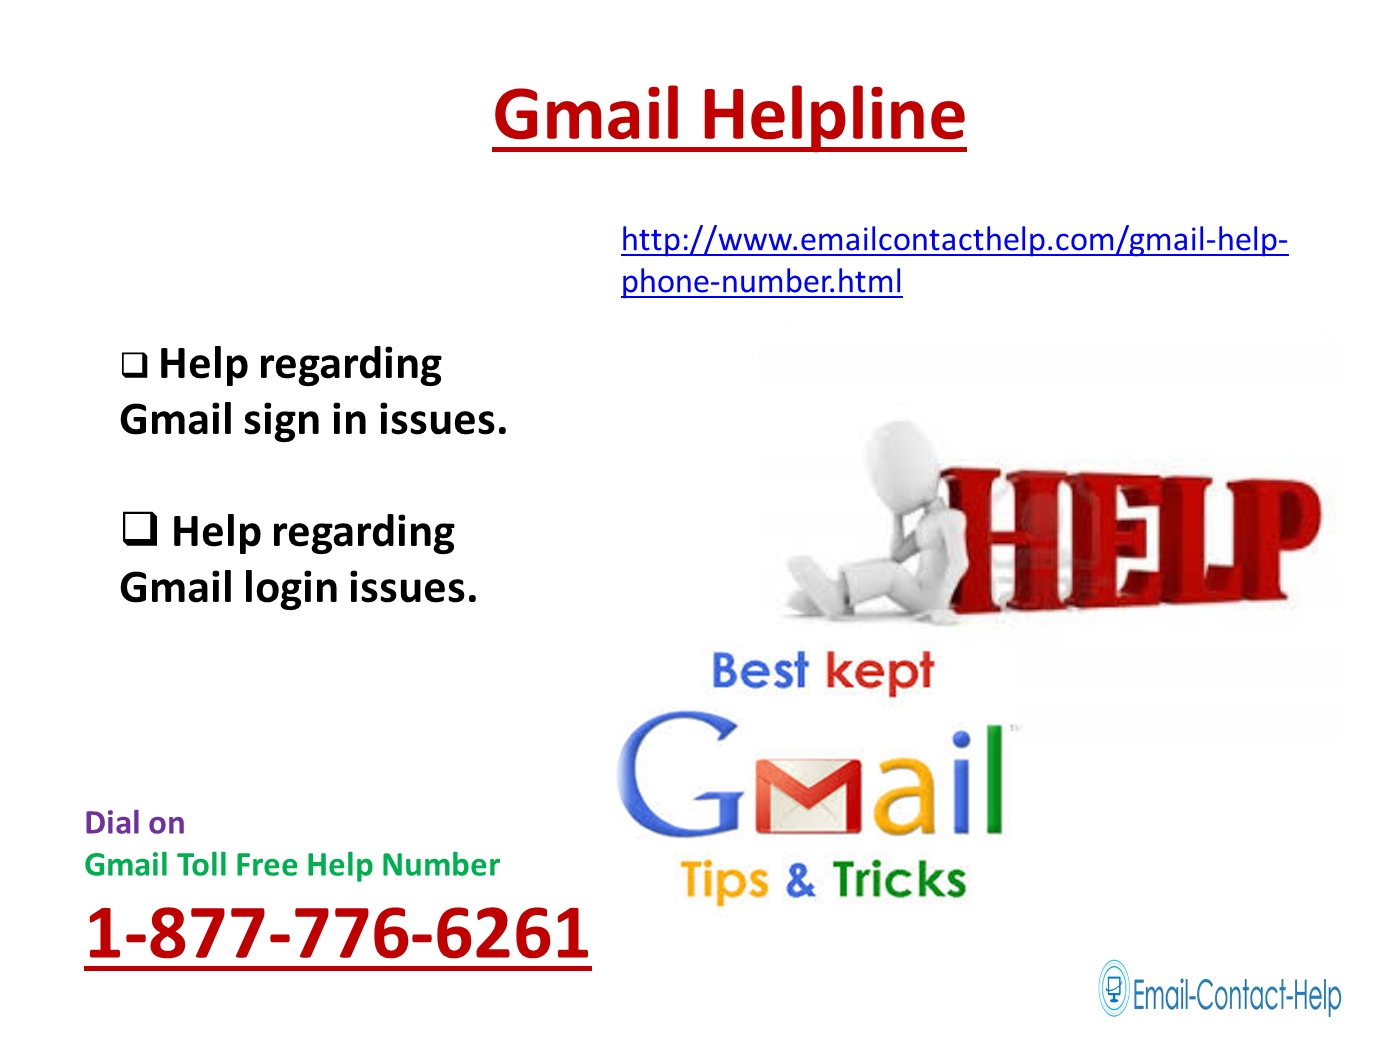 Call gmail toll free helpline number 1 877 776 6261 for instant assistance powerpoint presentation ppt